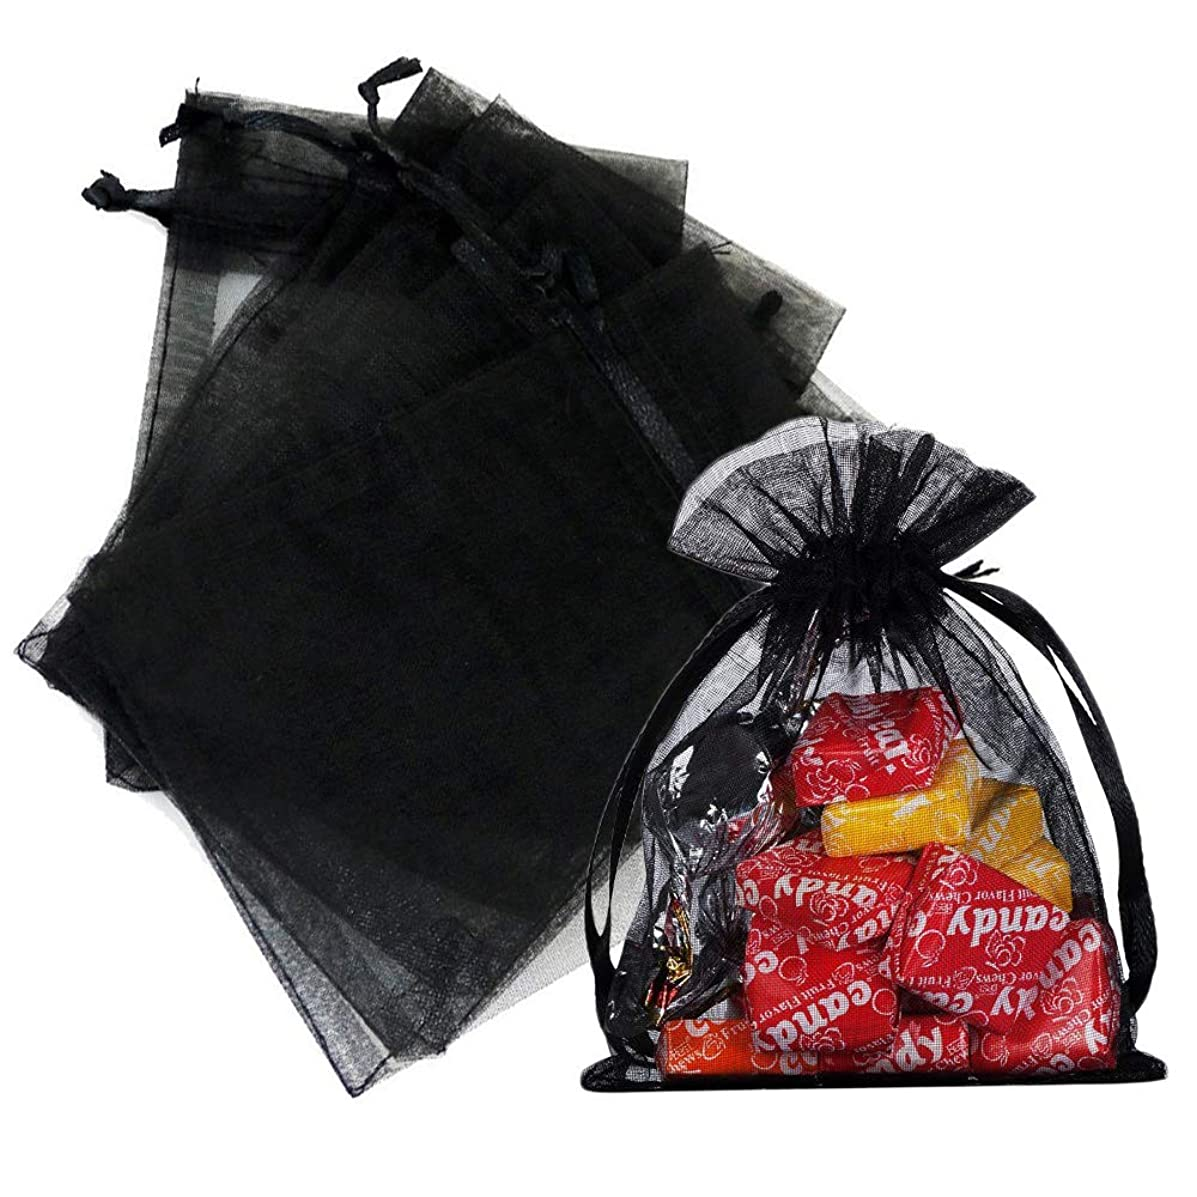 Outdoorfly 50PCS Drawstring Organza Bags 5x7 Inches Black Transparent Jewelry Favor Pouches Baby Shower Party Wedding Gift Bags Chocolate Candy Bags(50PCS Black)